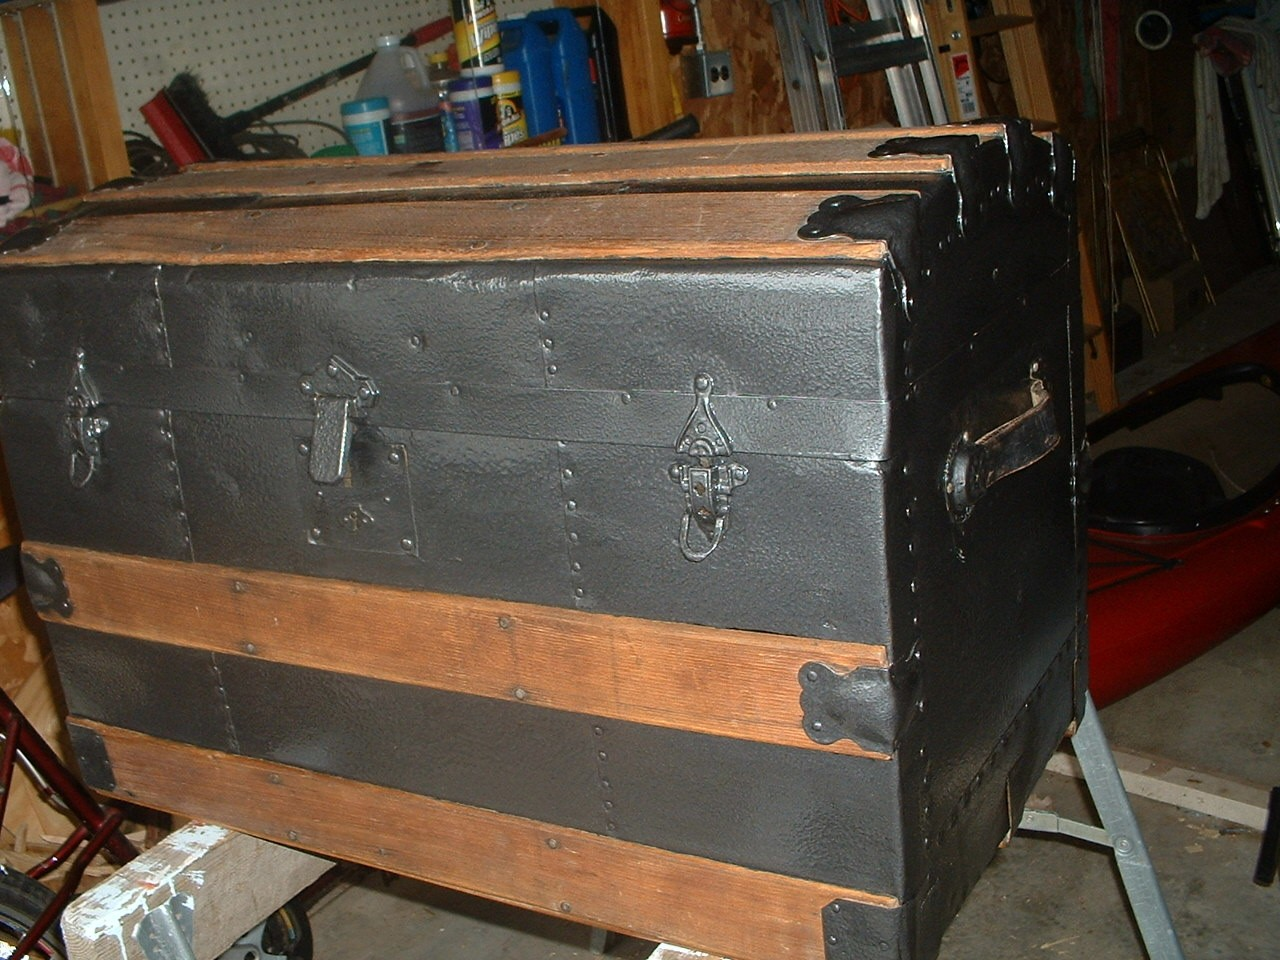 RE: Restoring a Steamer Trunk